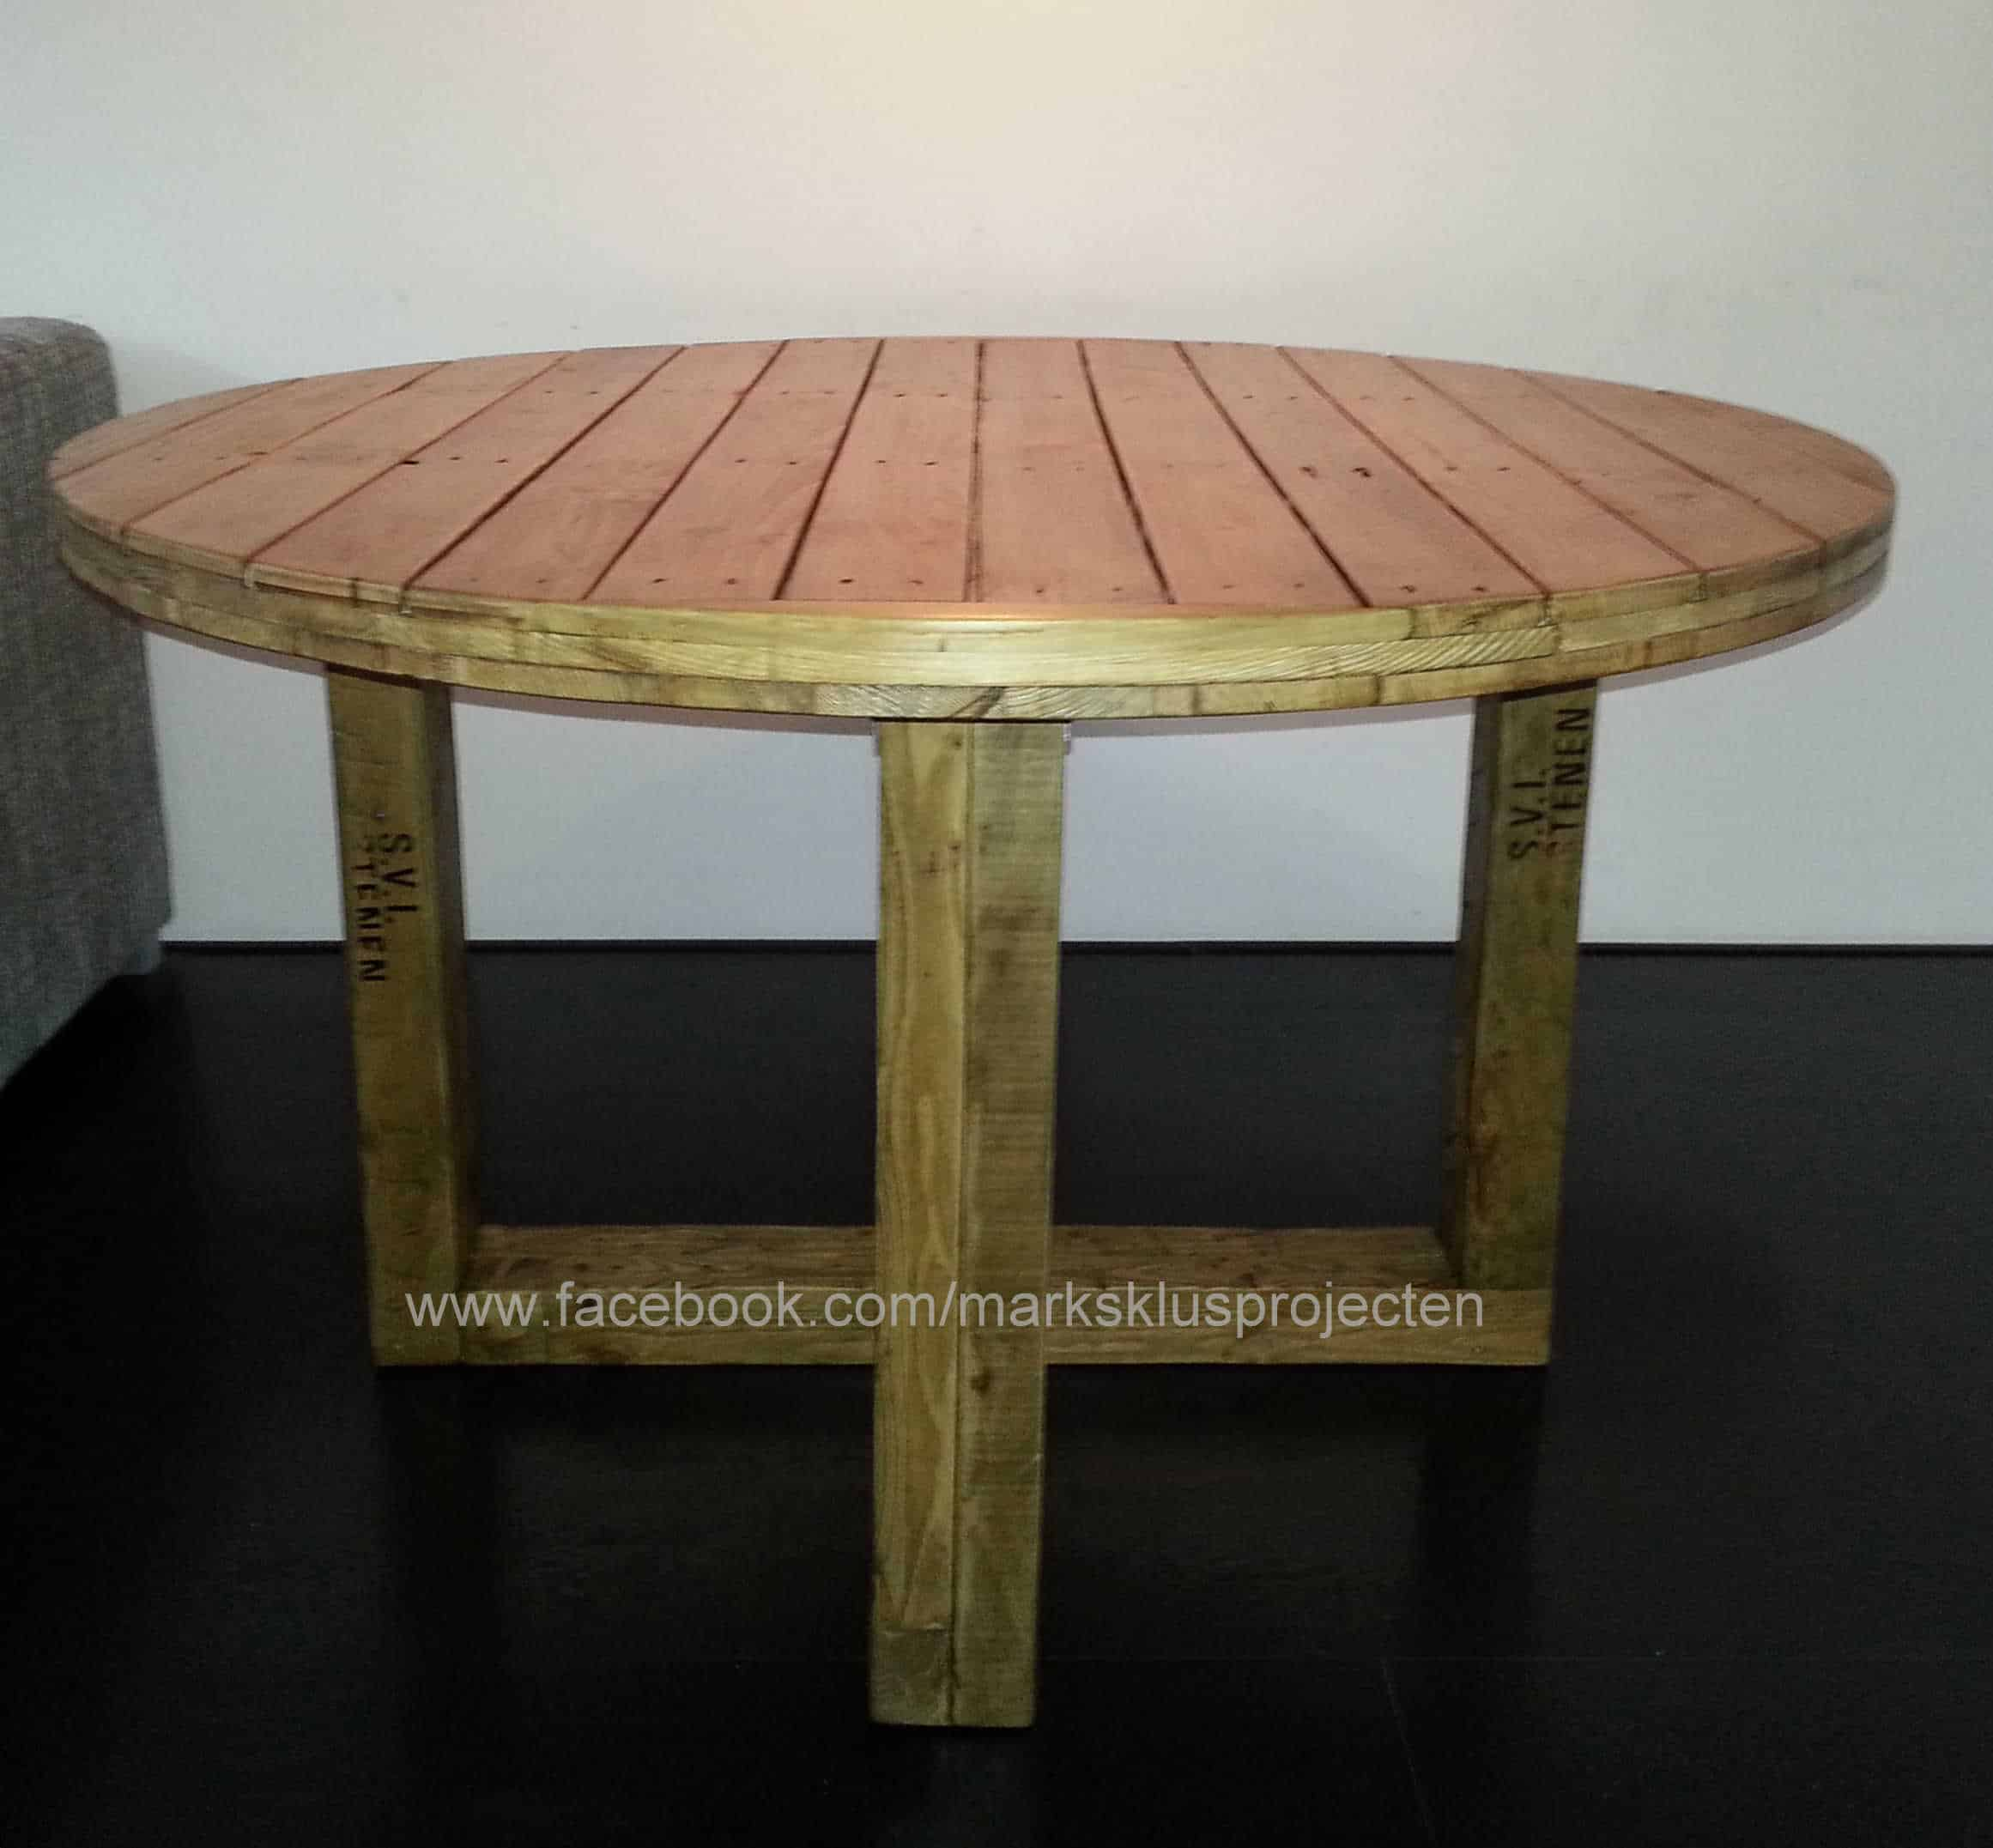 Animal Base Coffee Tables Round Dinner Table Made With Recycled Pallet Wood 1001